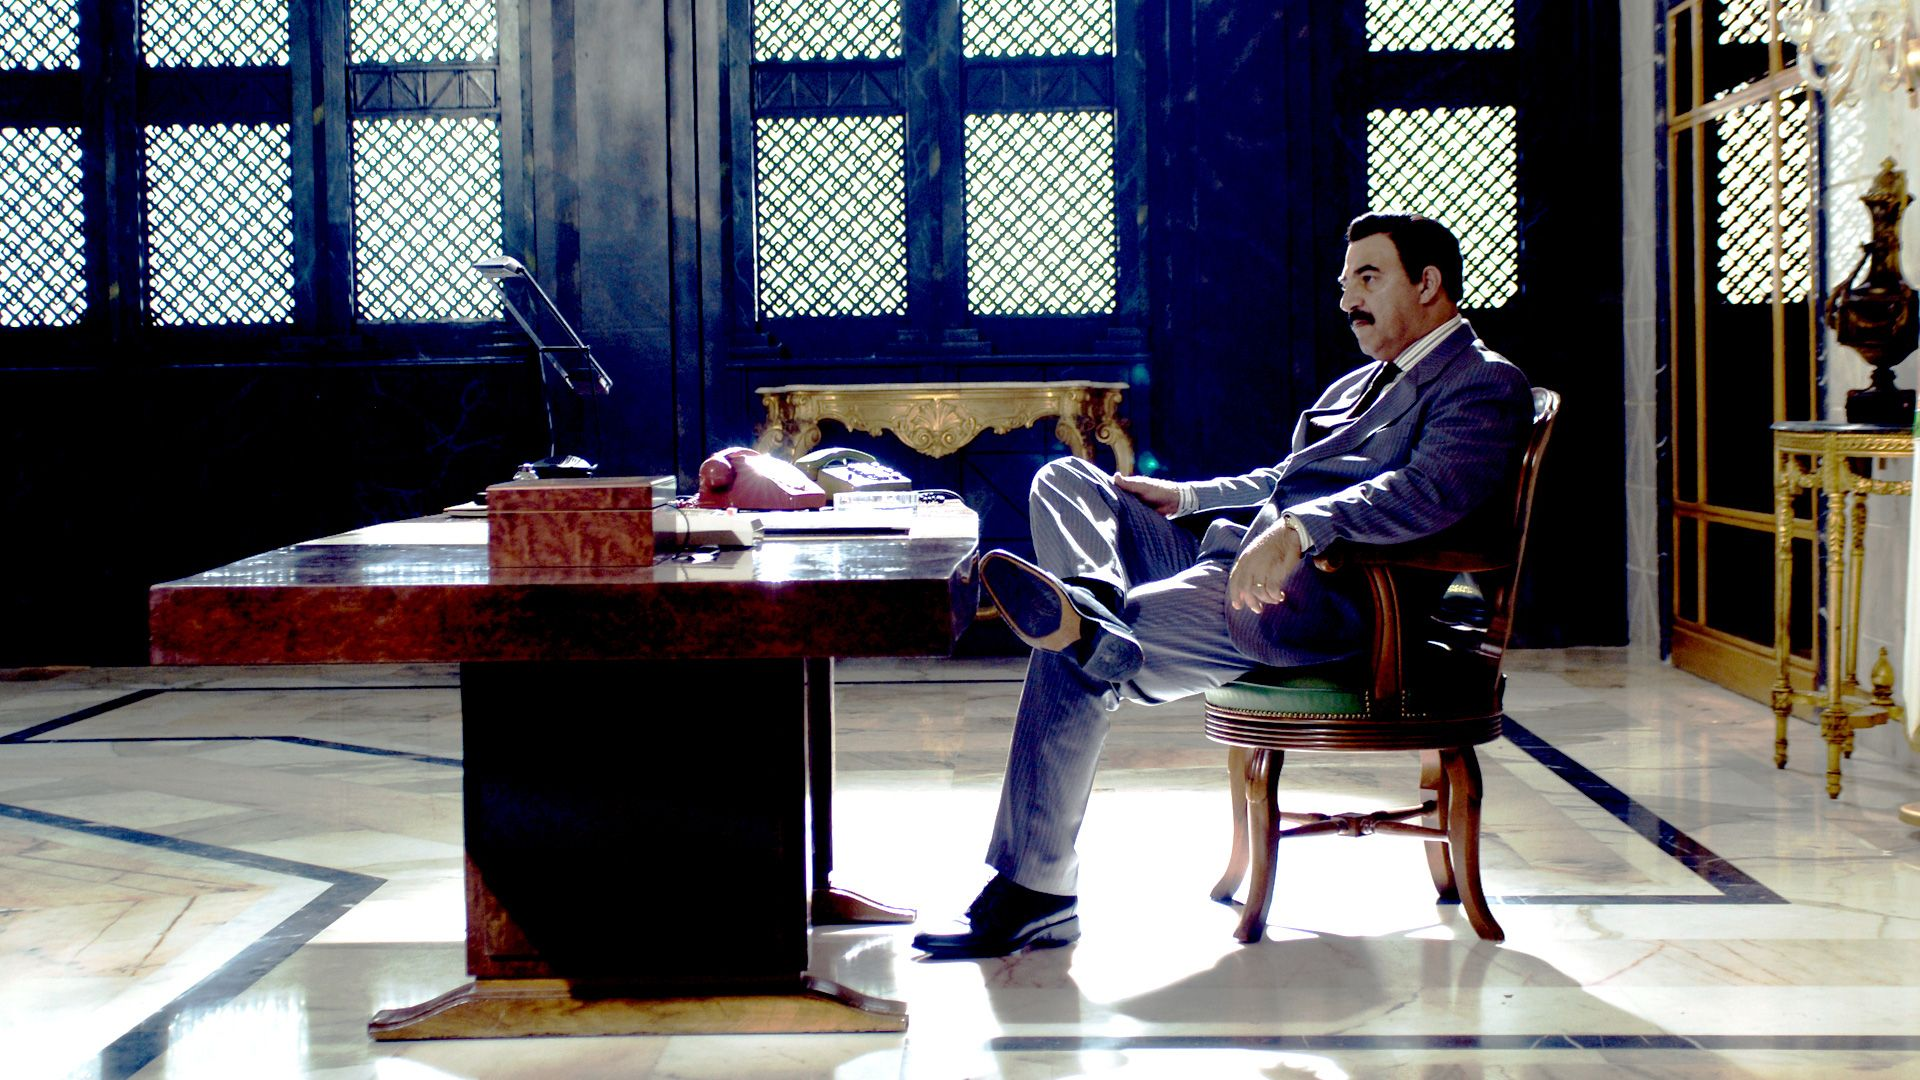 saddam hussein in his presidential office quothouse of